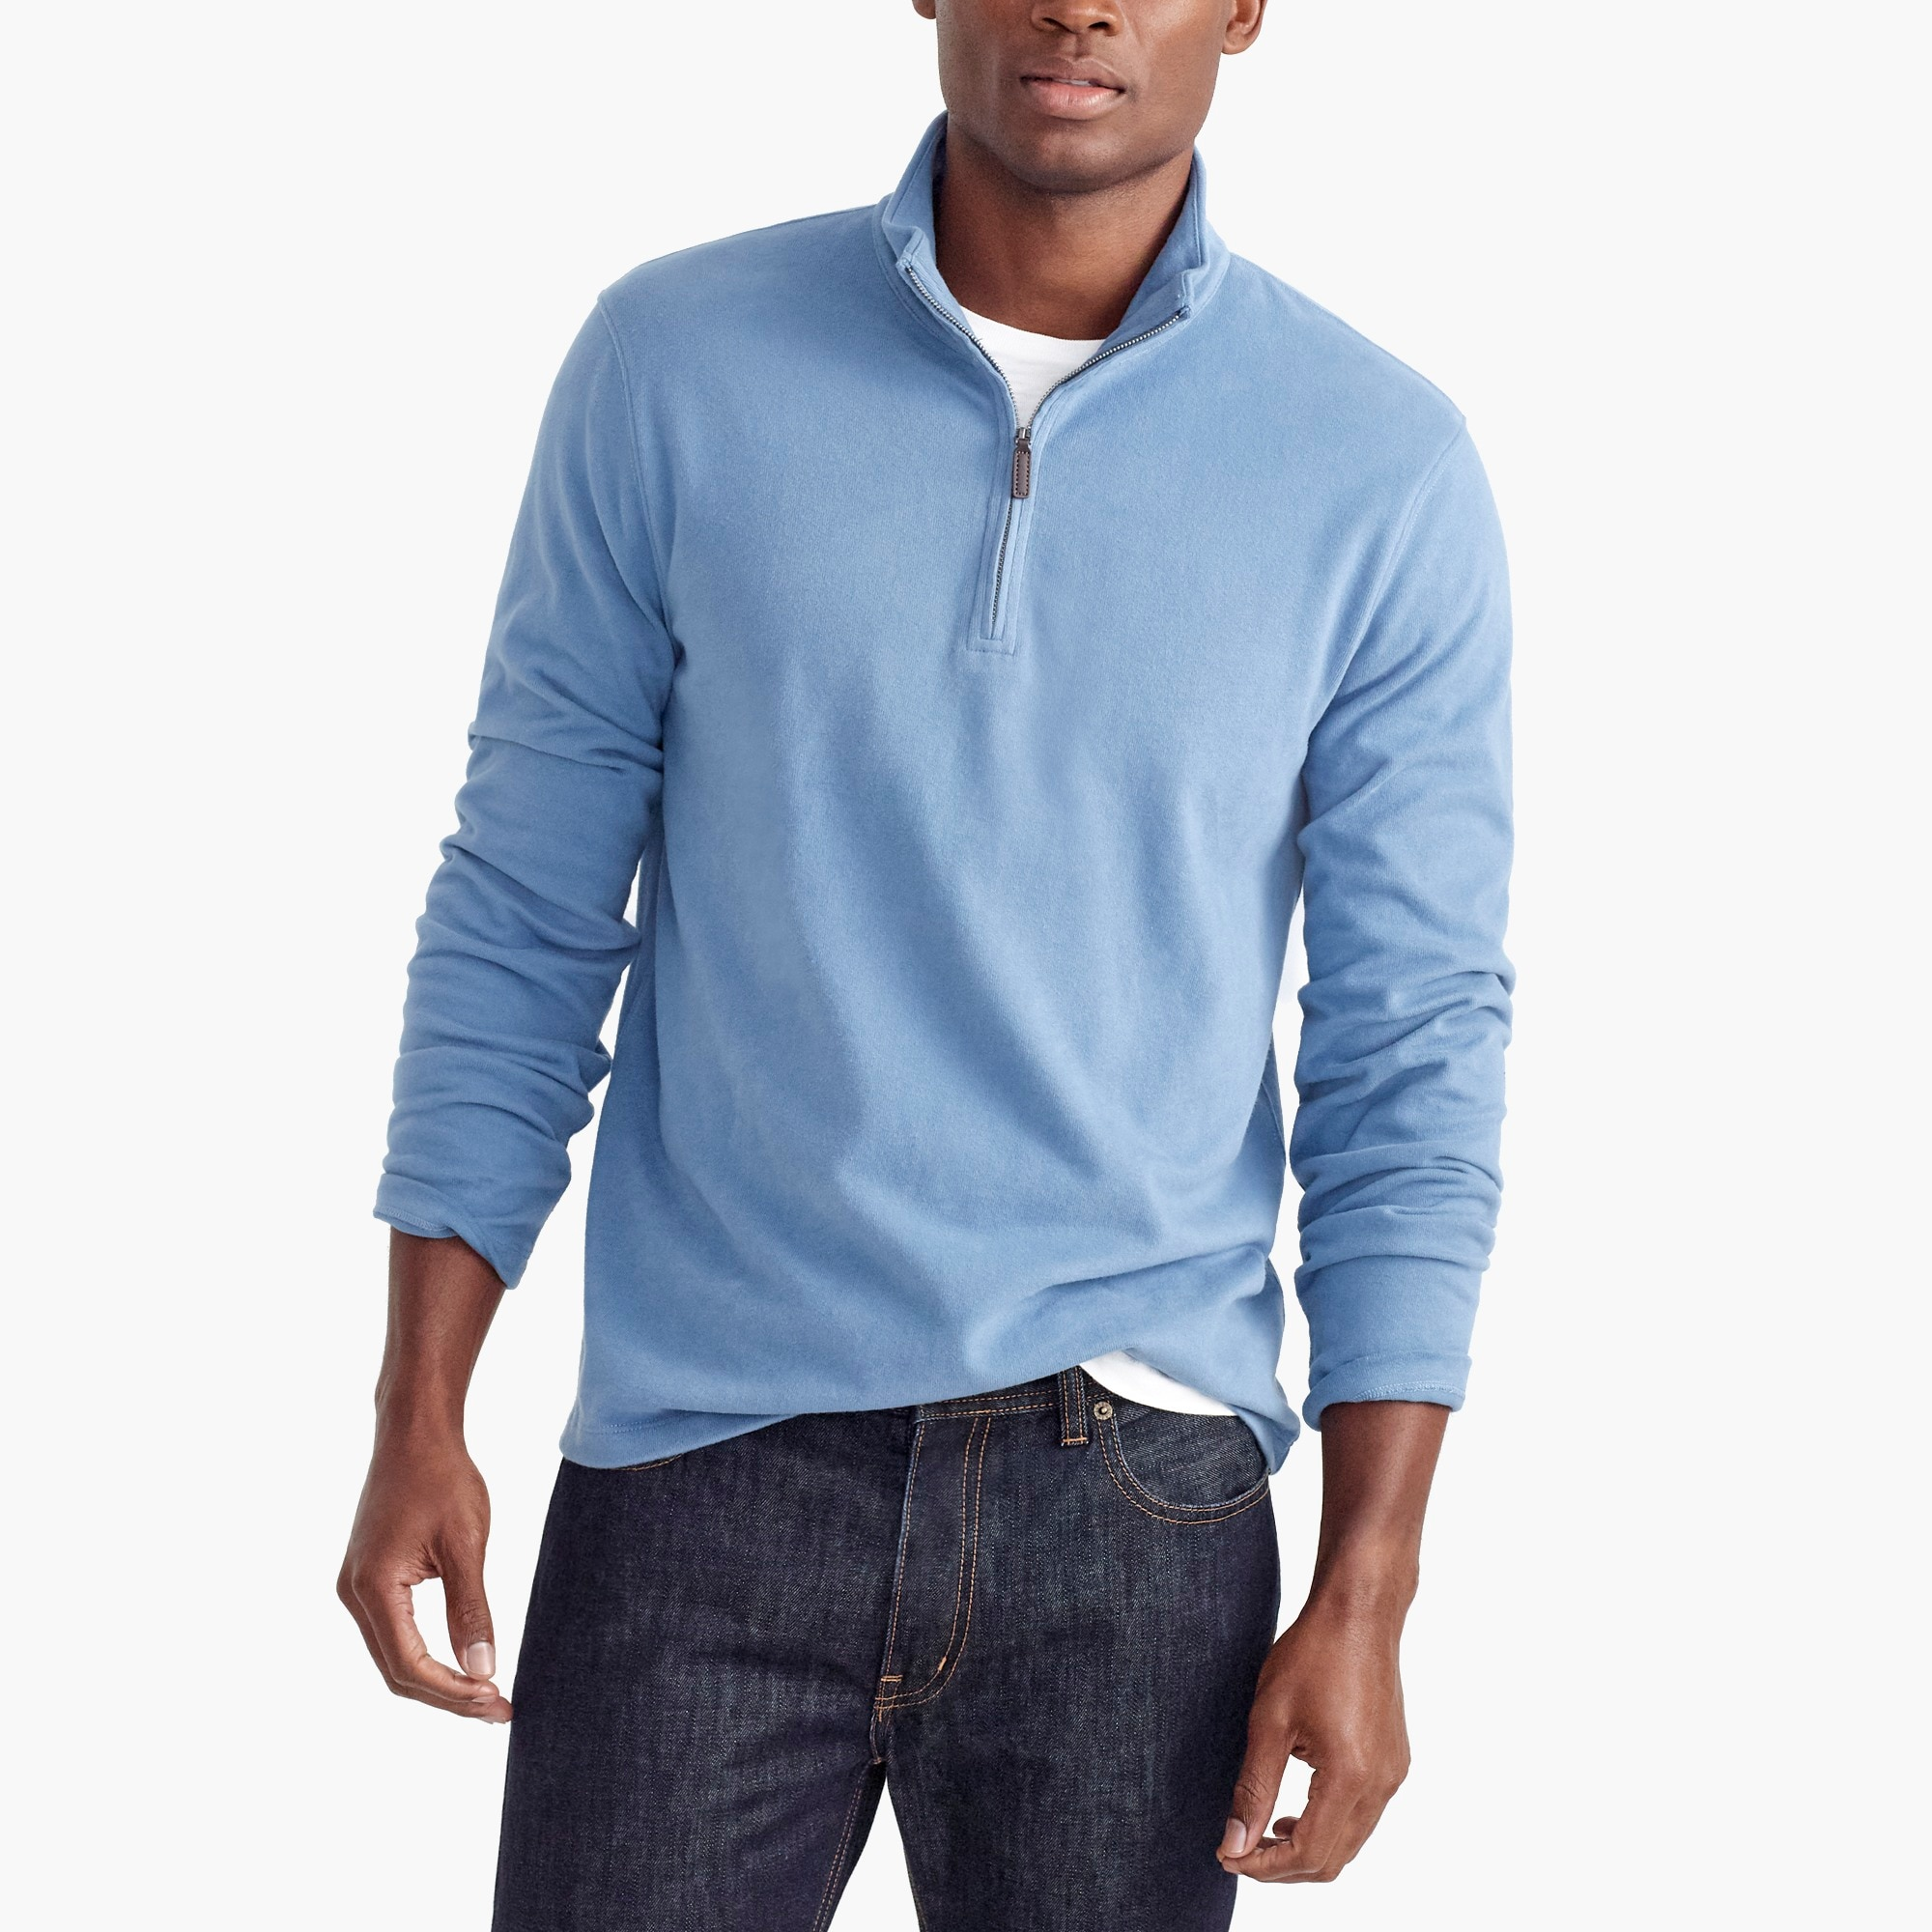 sueded cotton jersey half-zip pullover : factorymen third pieces